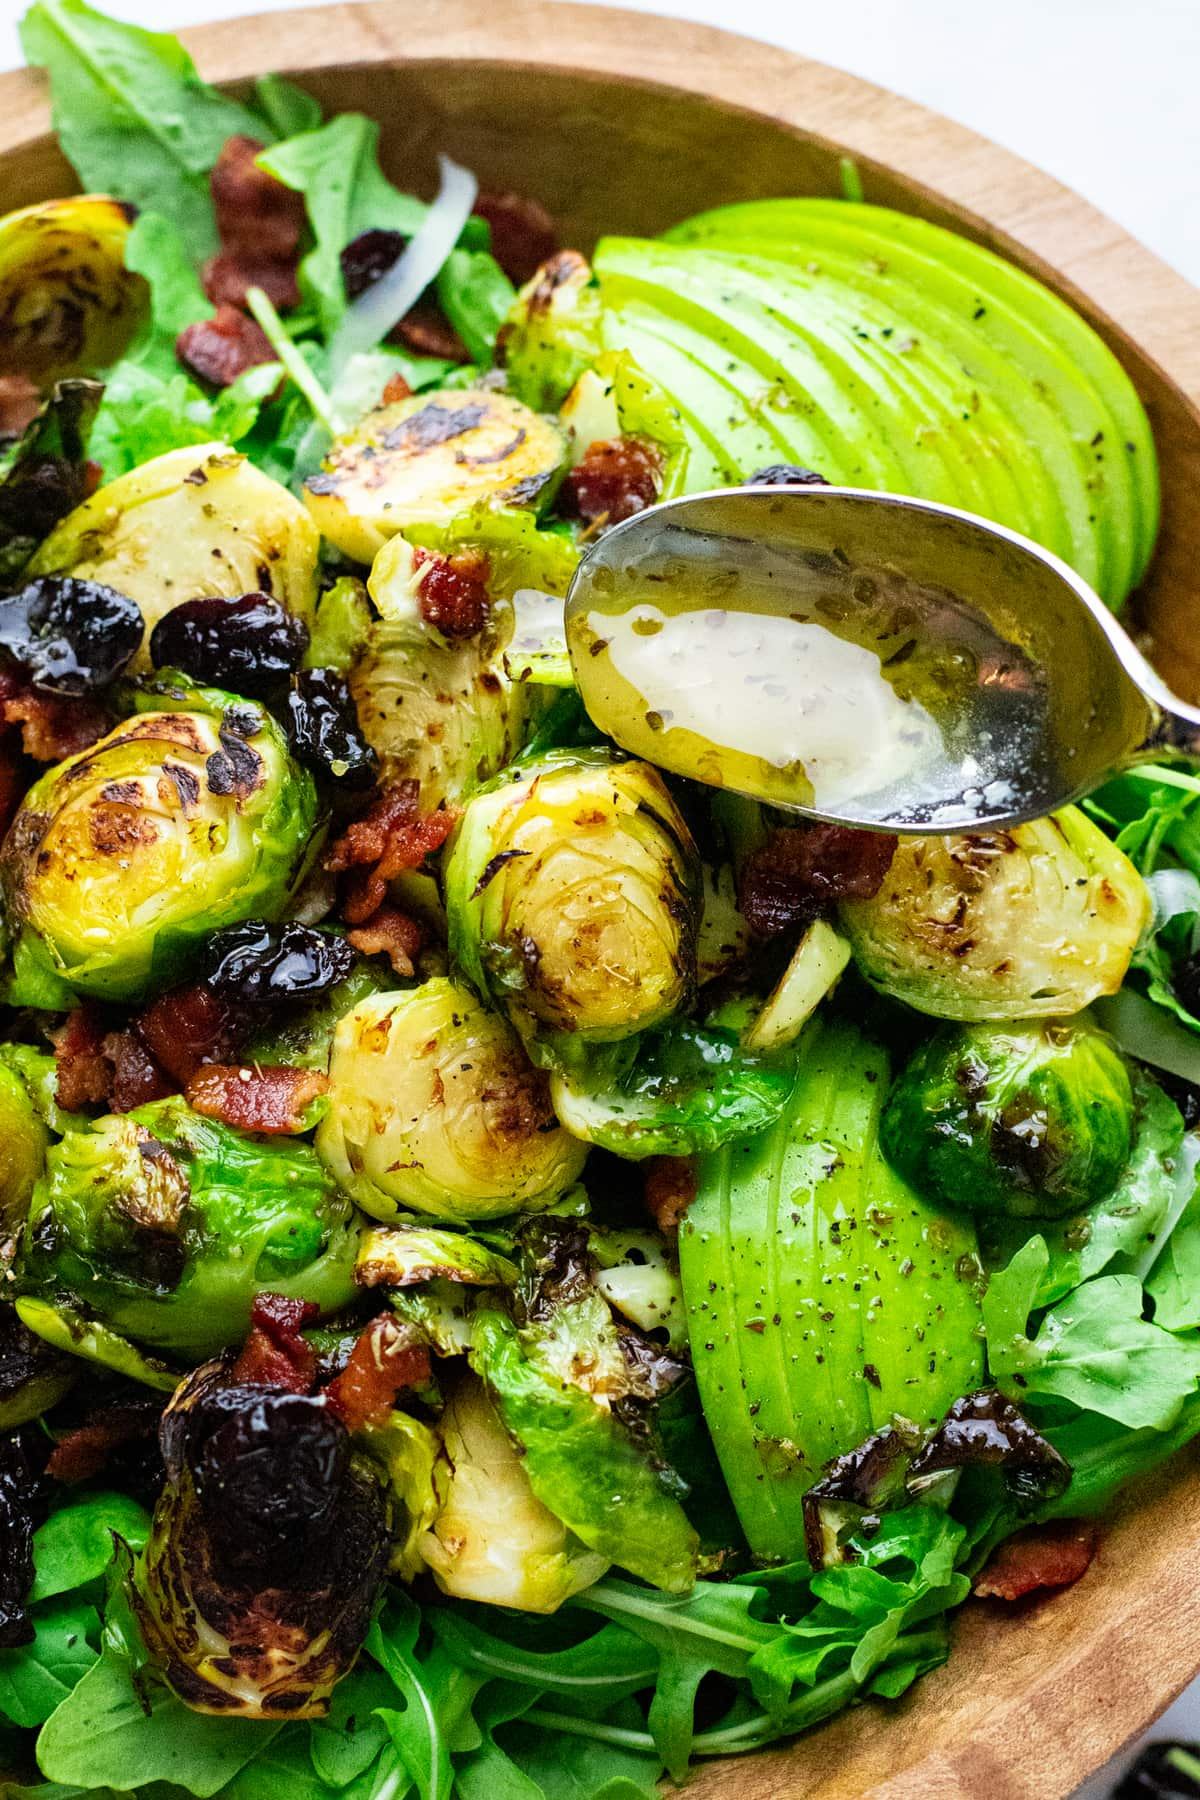 Spoon pouring salad dressing over salad with brussels sprouts and bacon.